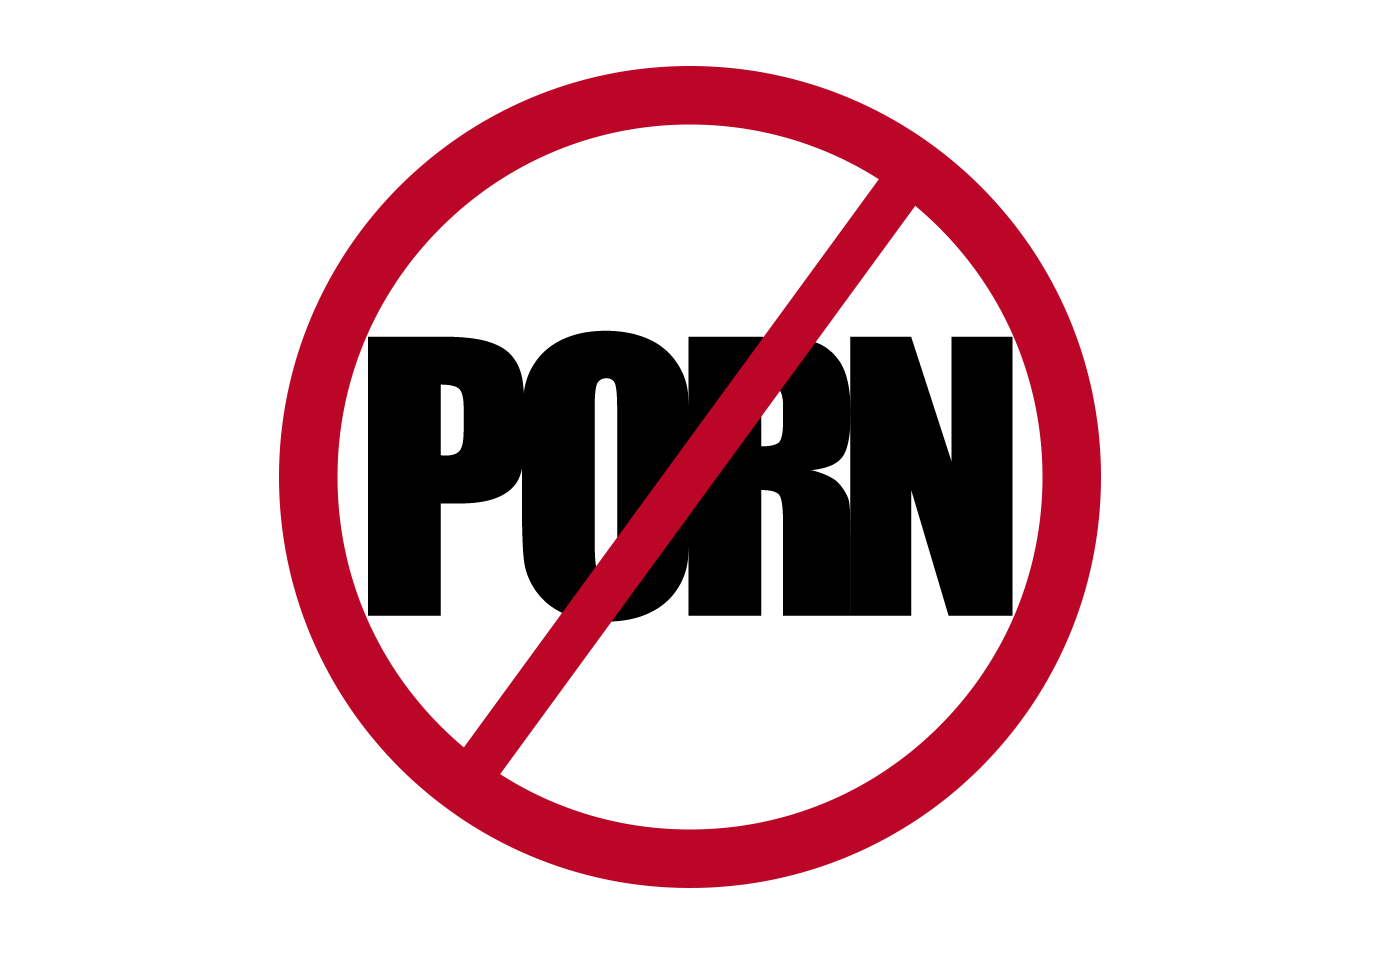 Porn sites with no ars